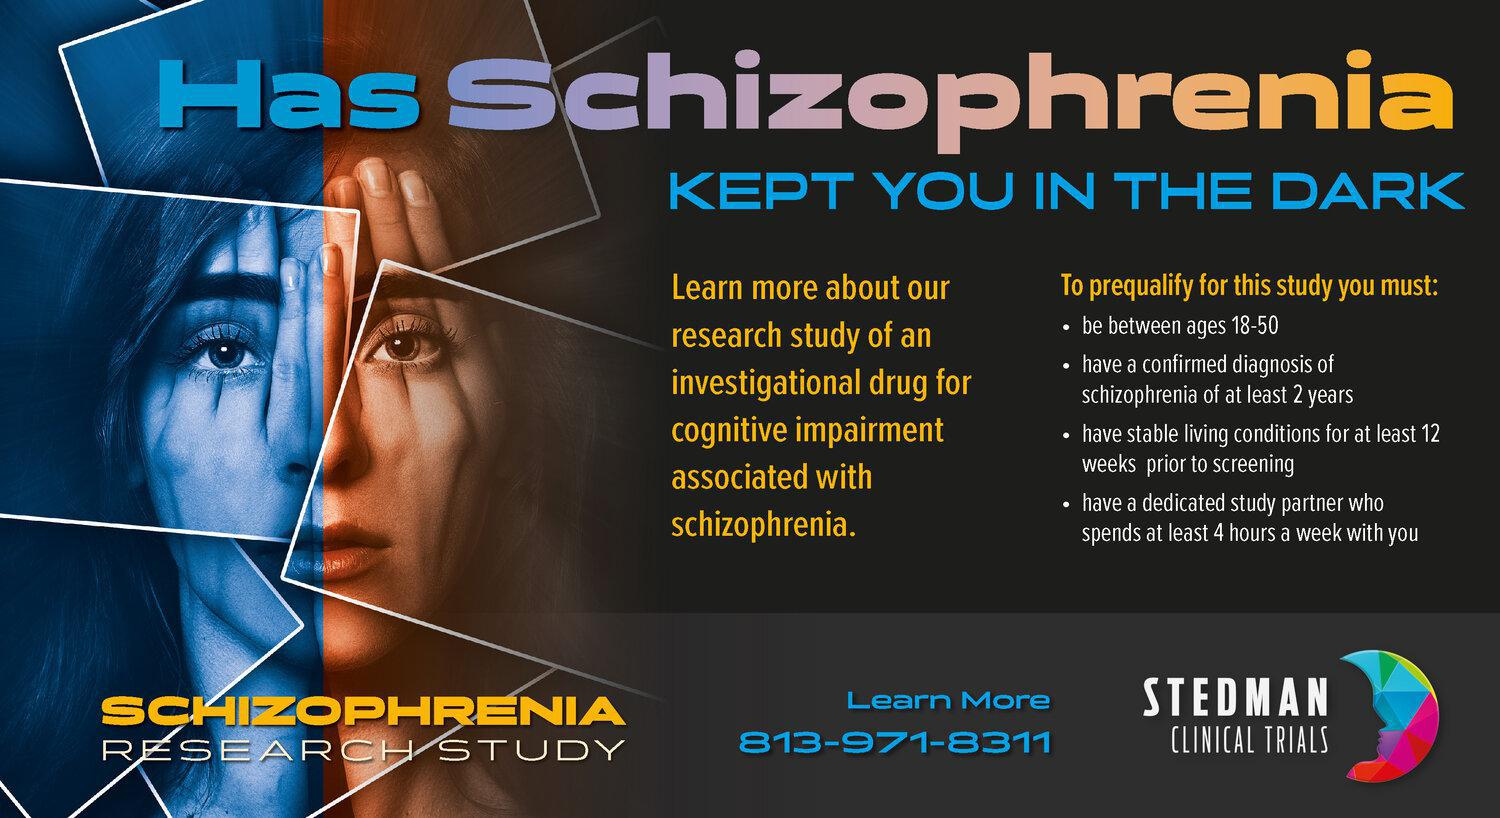 Schizophrenia research study